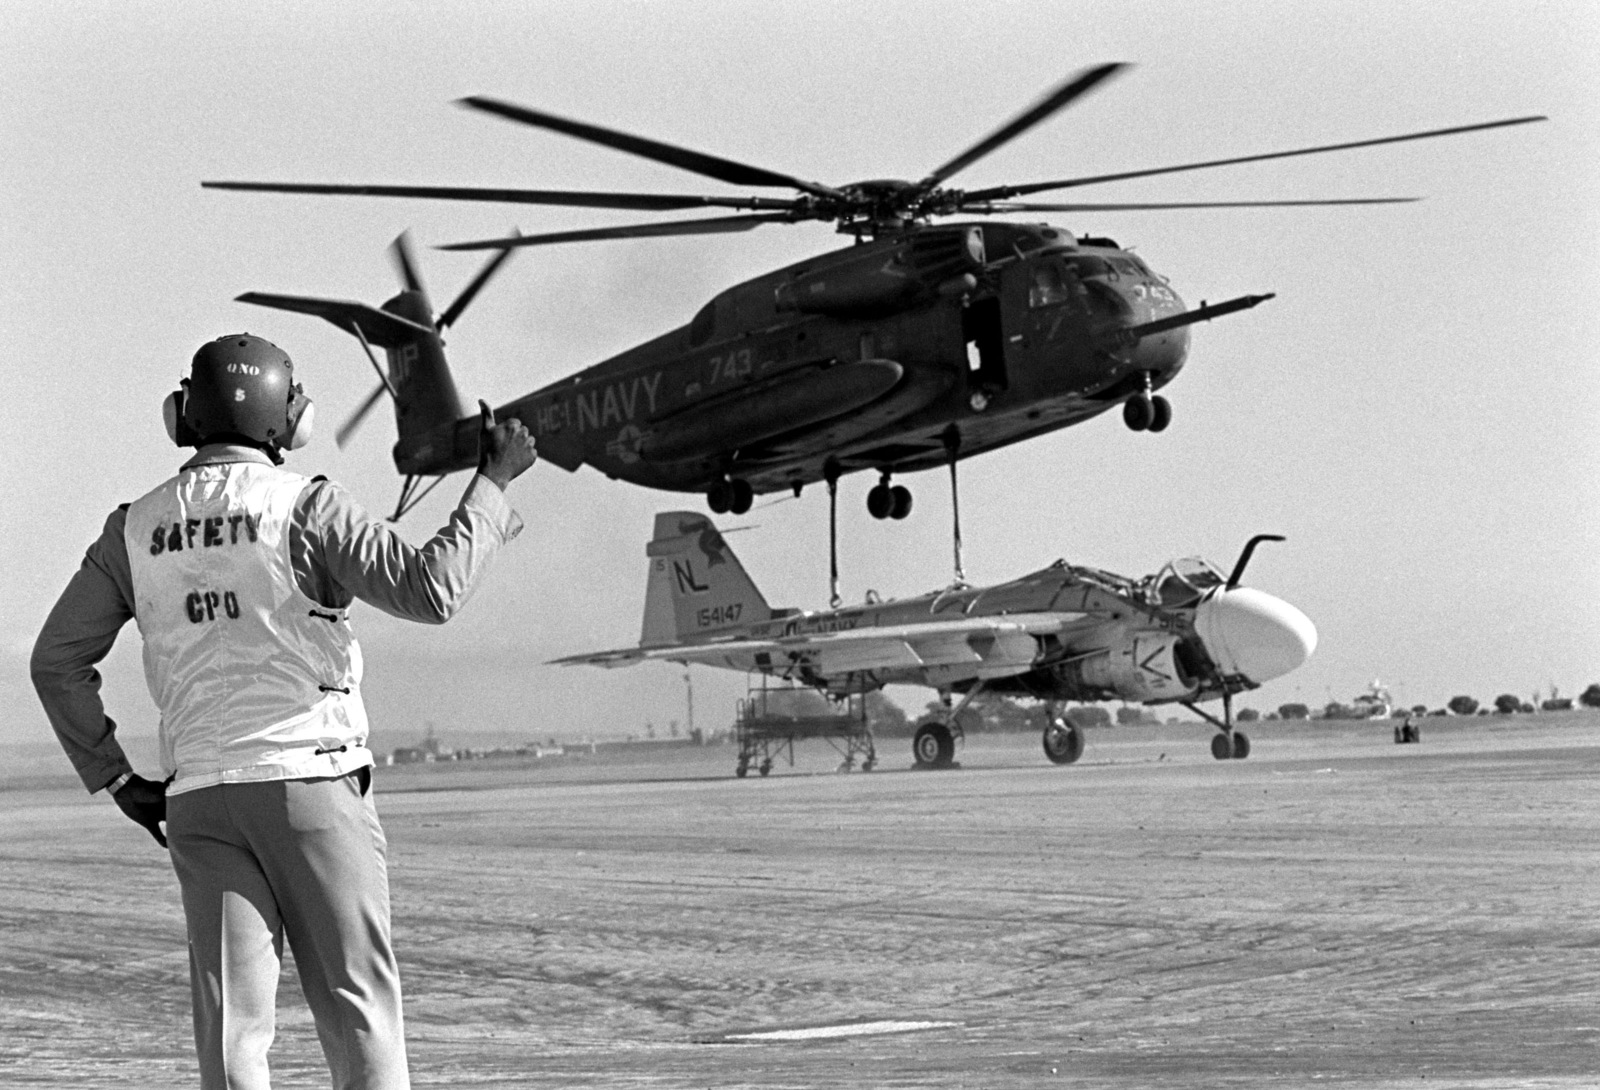 A chief petty officer signals a Helicopter Combat Support Squadron 1 (HC-1) CH-53E Super Stallion helicopter to lift off with a damaged Attack Squadron 52 (VA-52) A-6E Intruder aircraft. The helicopter will carry the aircraft to the Naval Air Rework Facility, Alameda, California, for repairs. The Intruder was damaged when a hydraulic failure forced it to land with its landing gear retracted